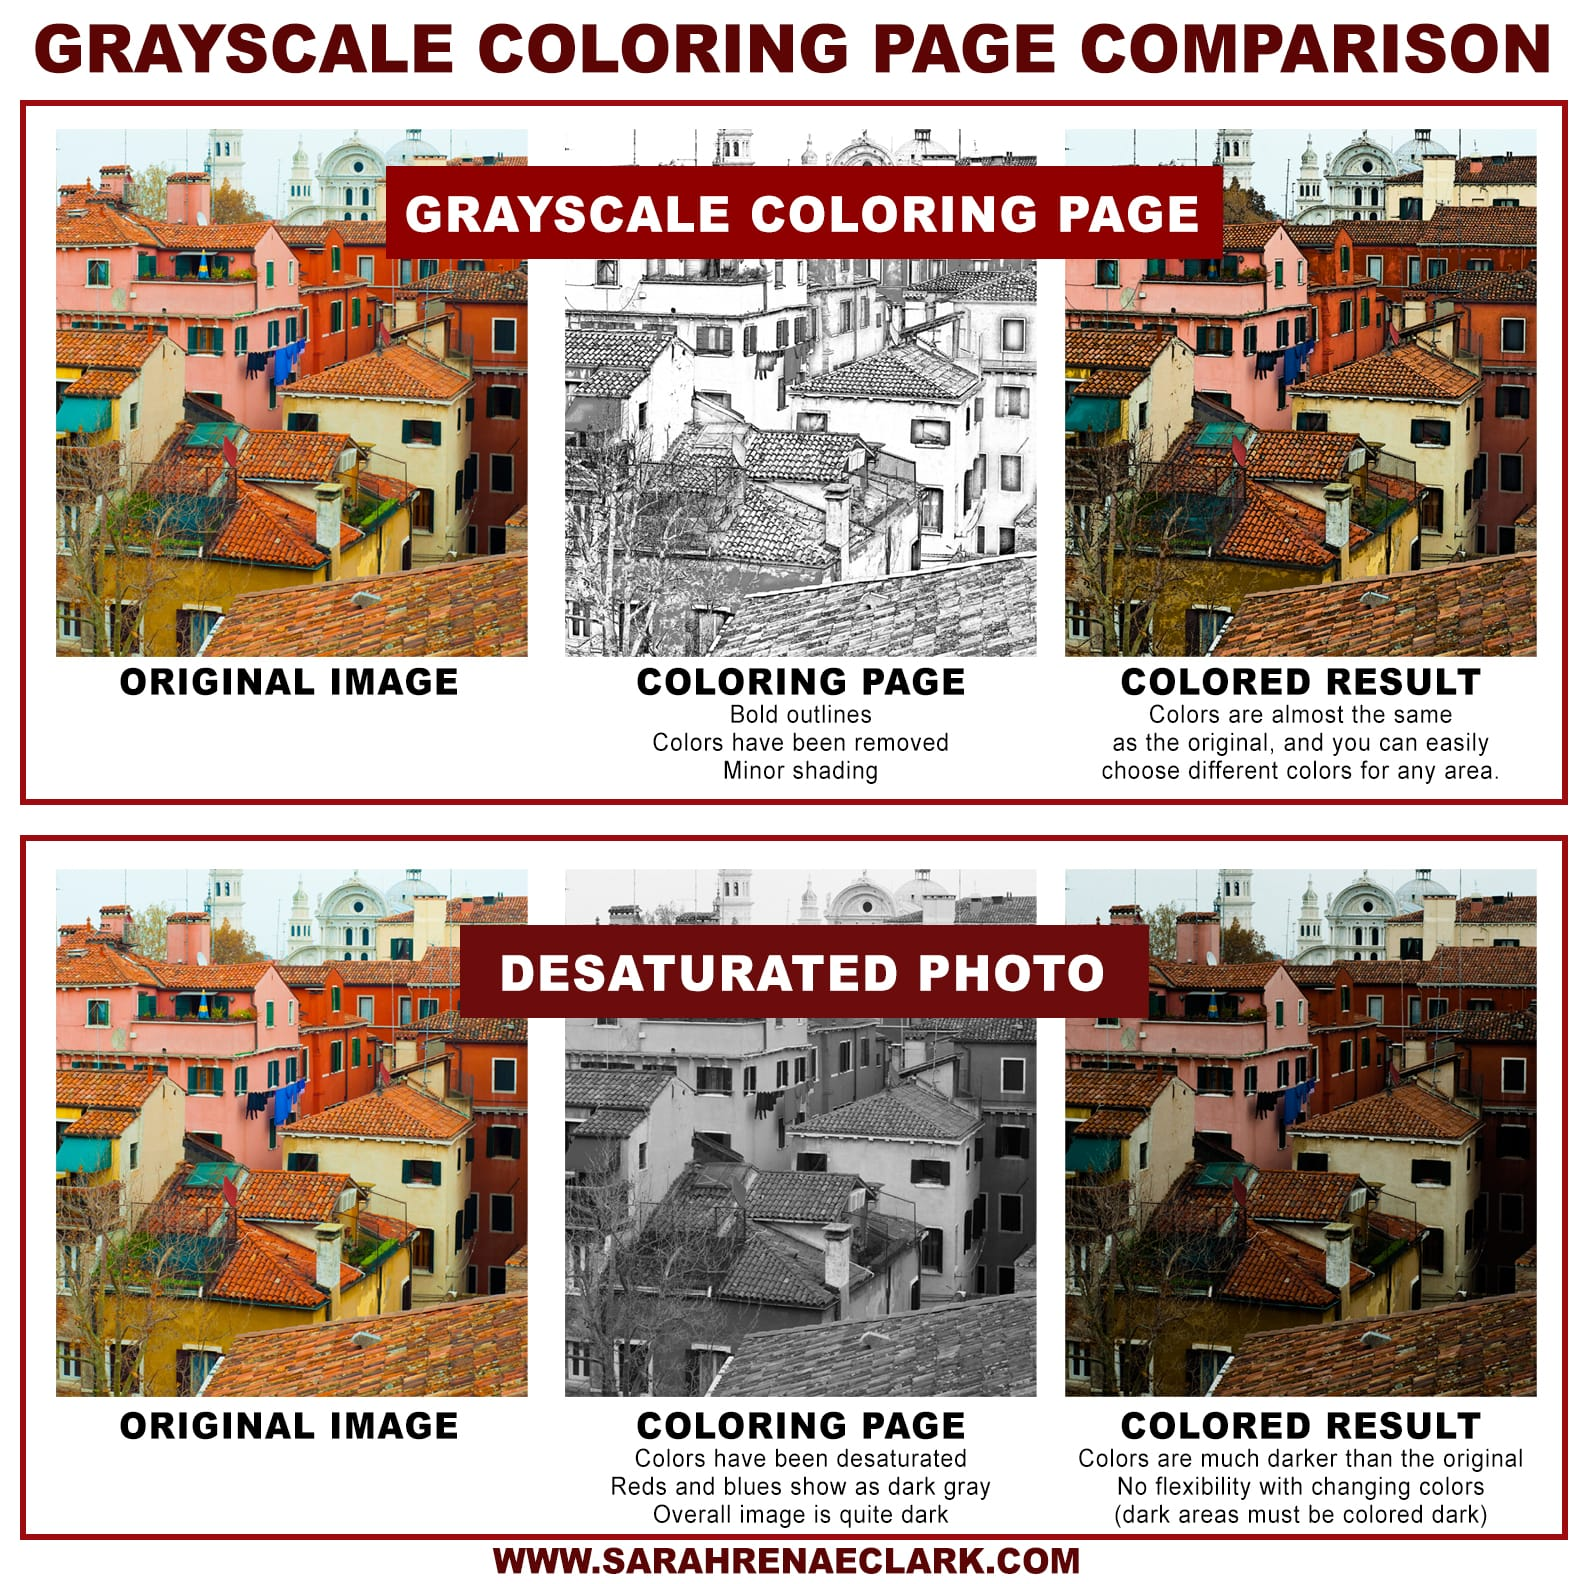 Grayscale coloring page comparison